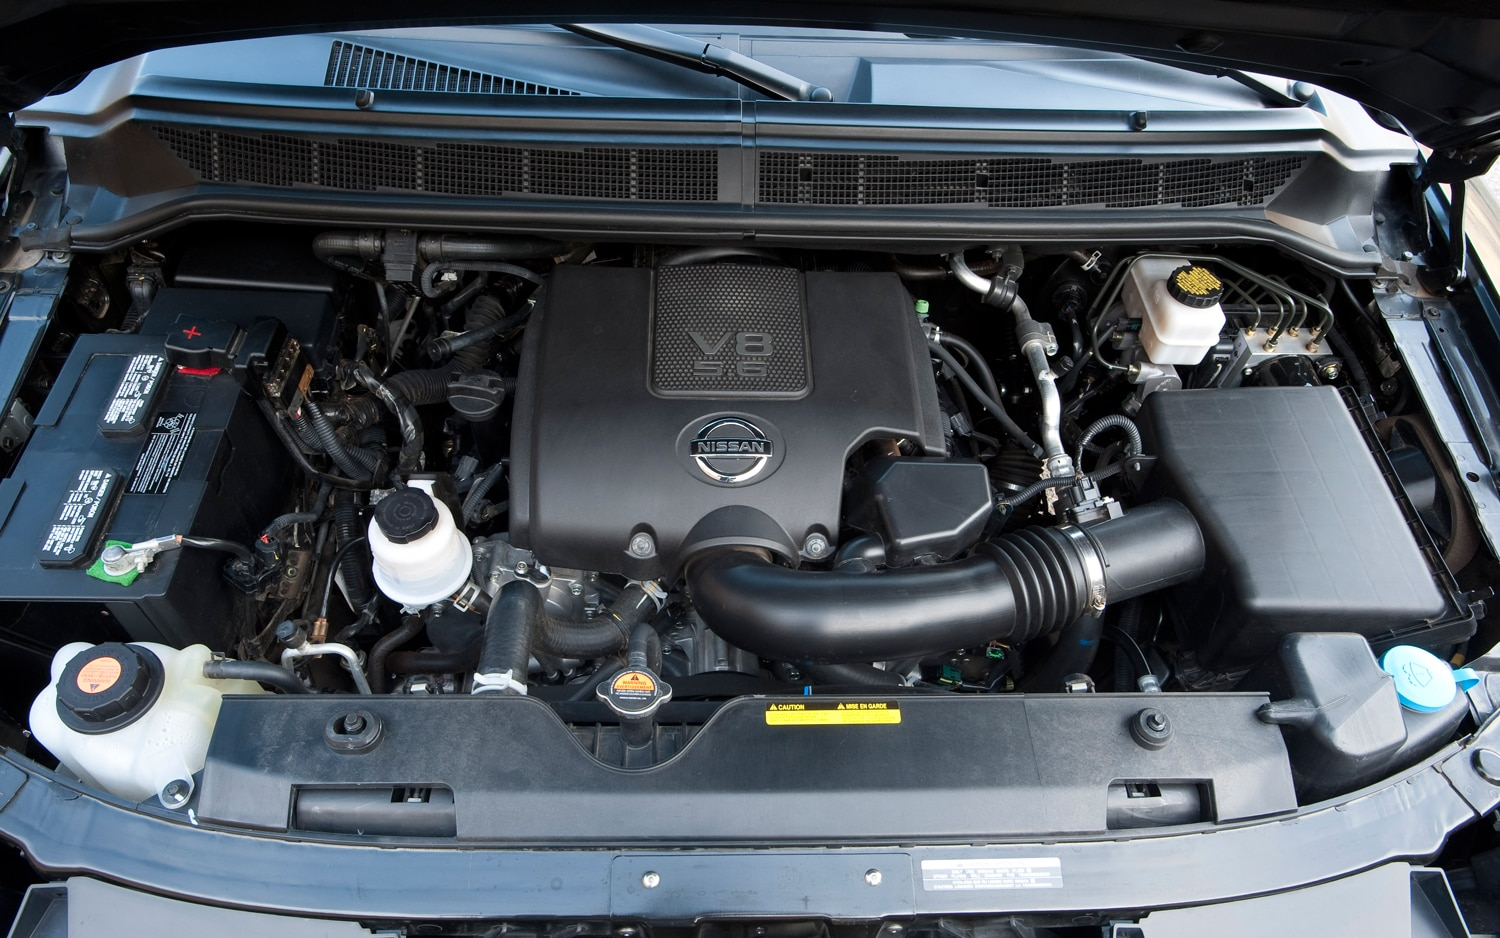 2012 Nissan Armada Engine